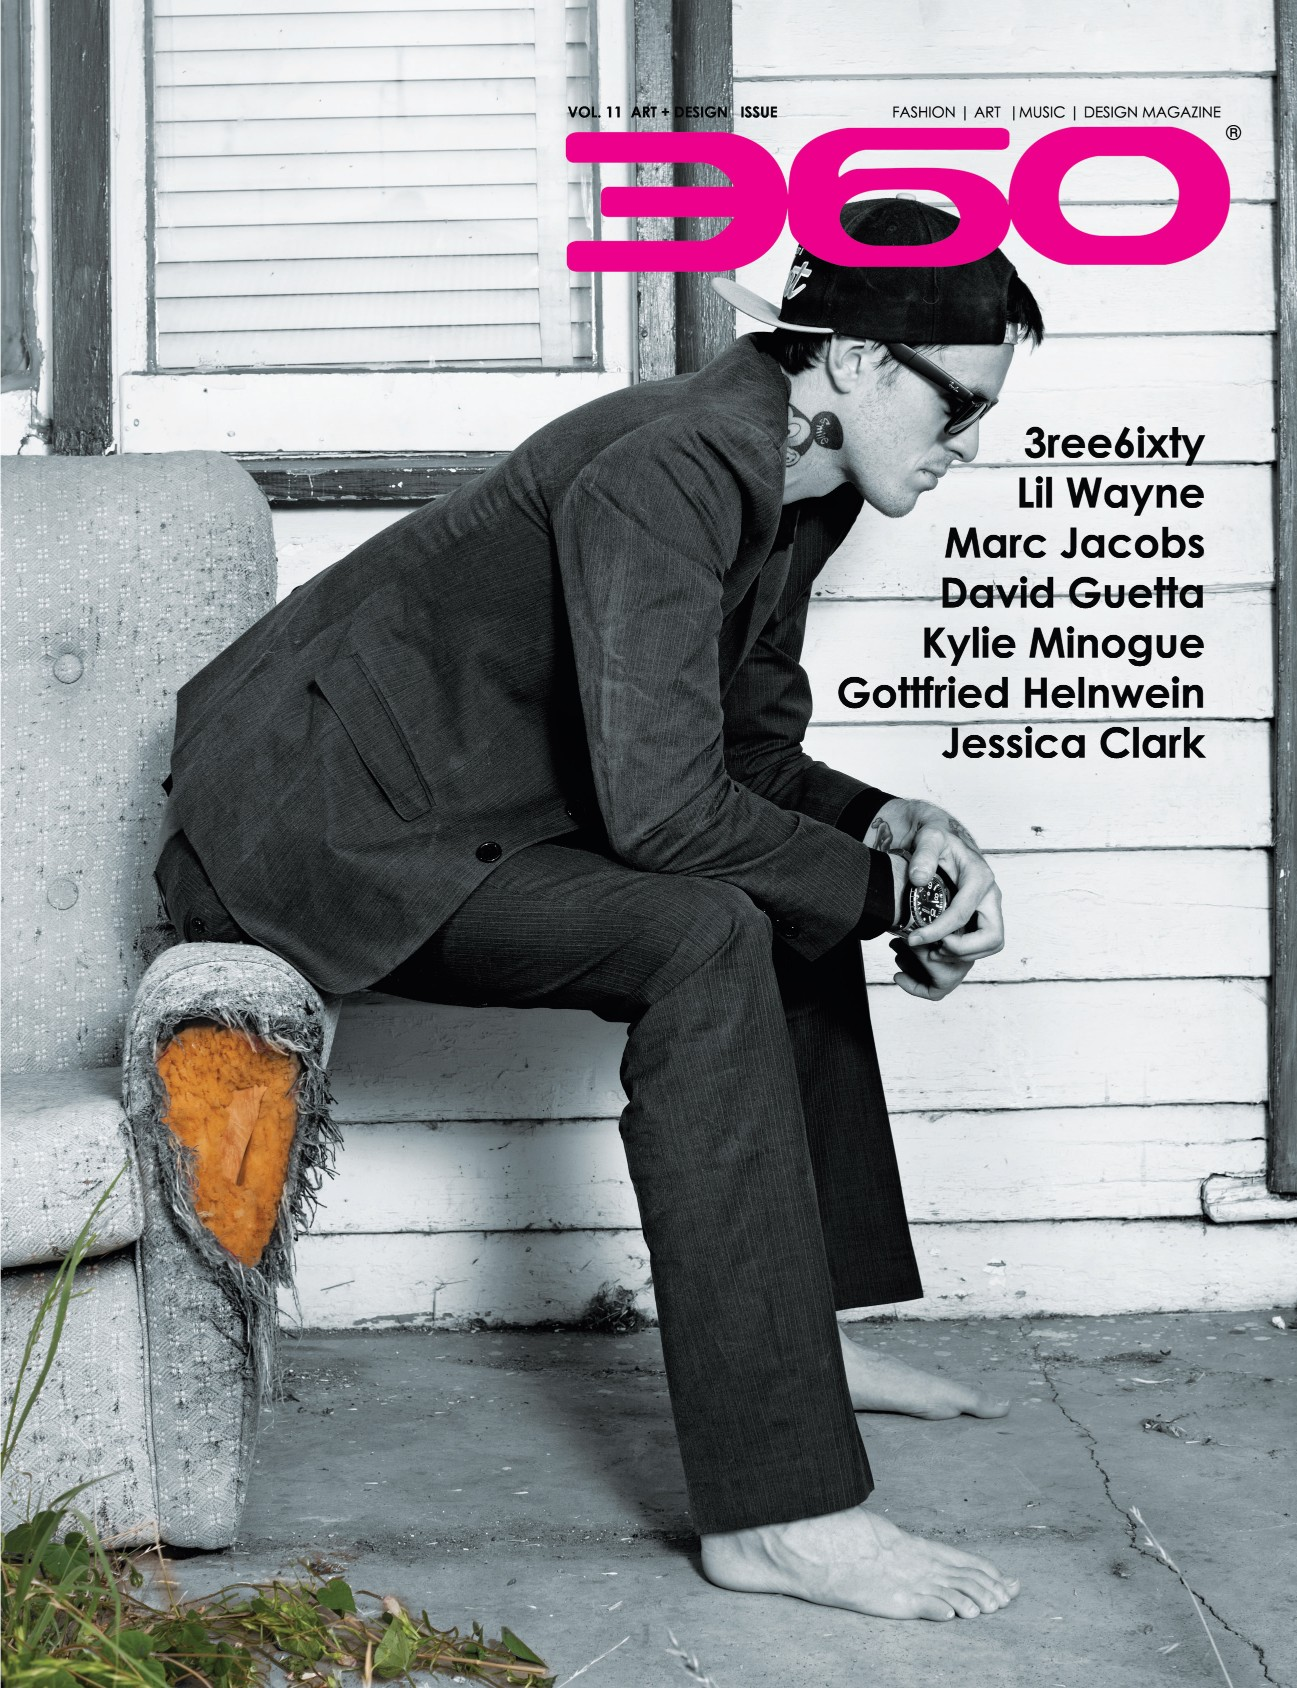 360 Issue 20 – 3ree6ixty